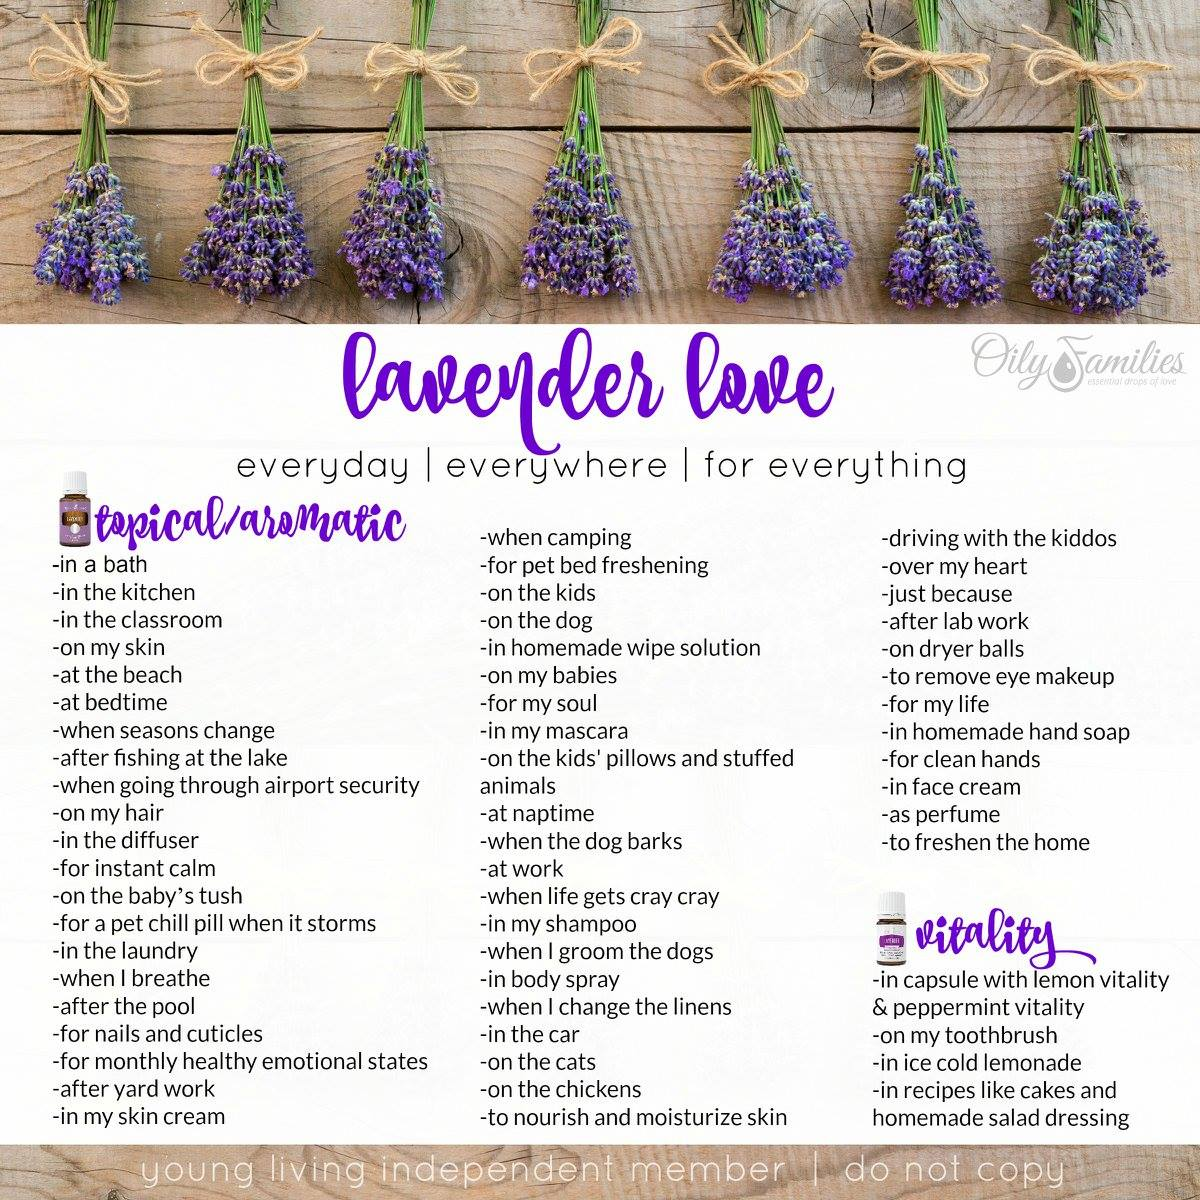 So Many Lavender Essential Oil Uses! | Decorchick!®